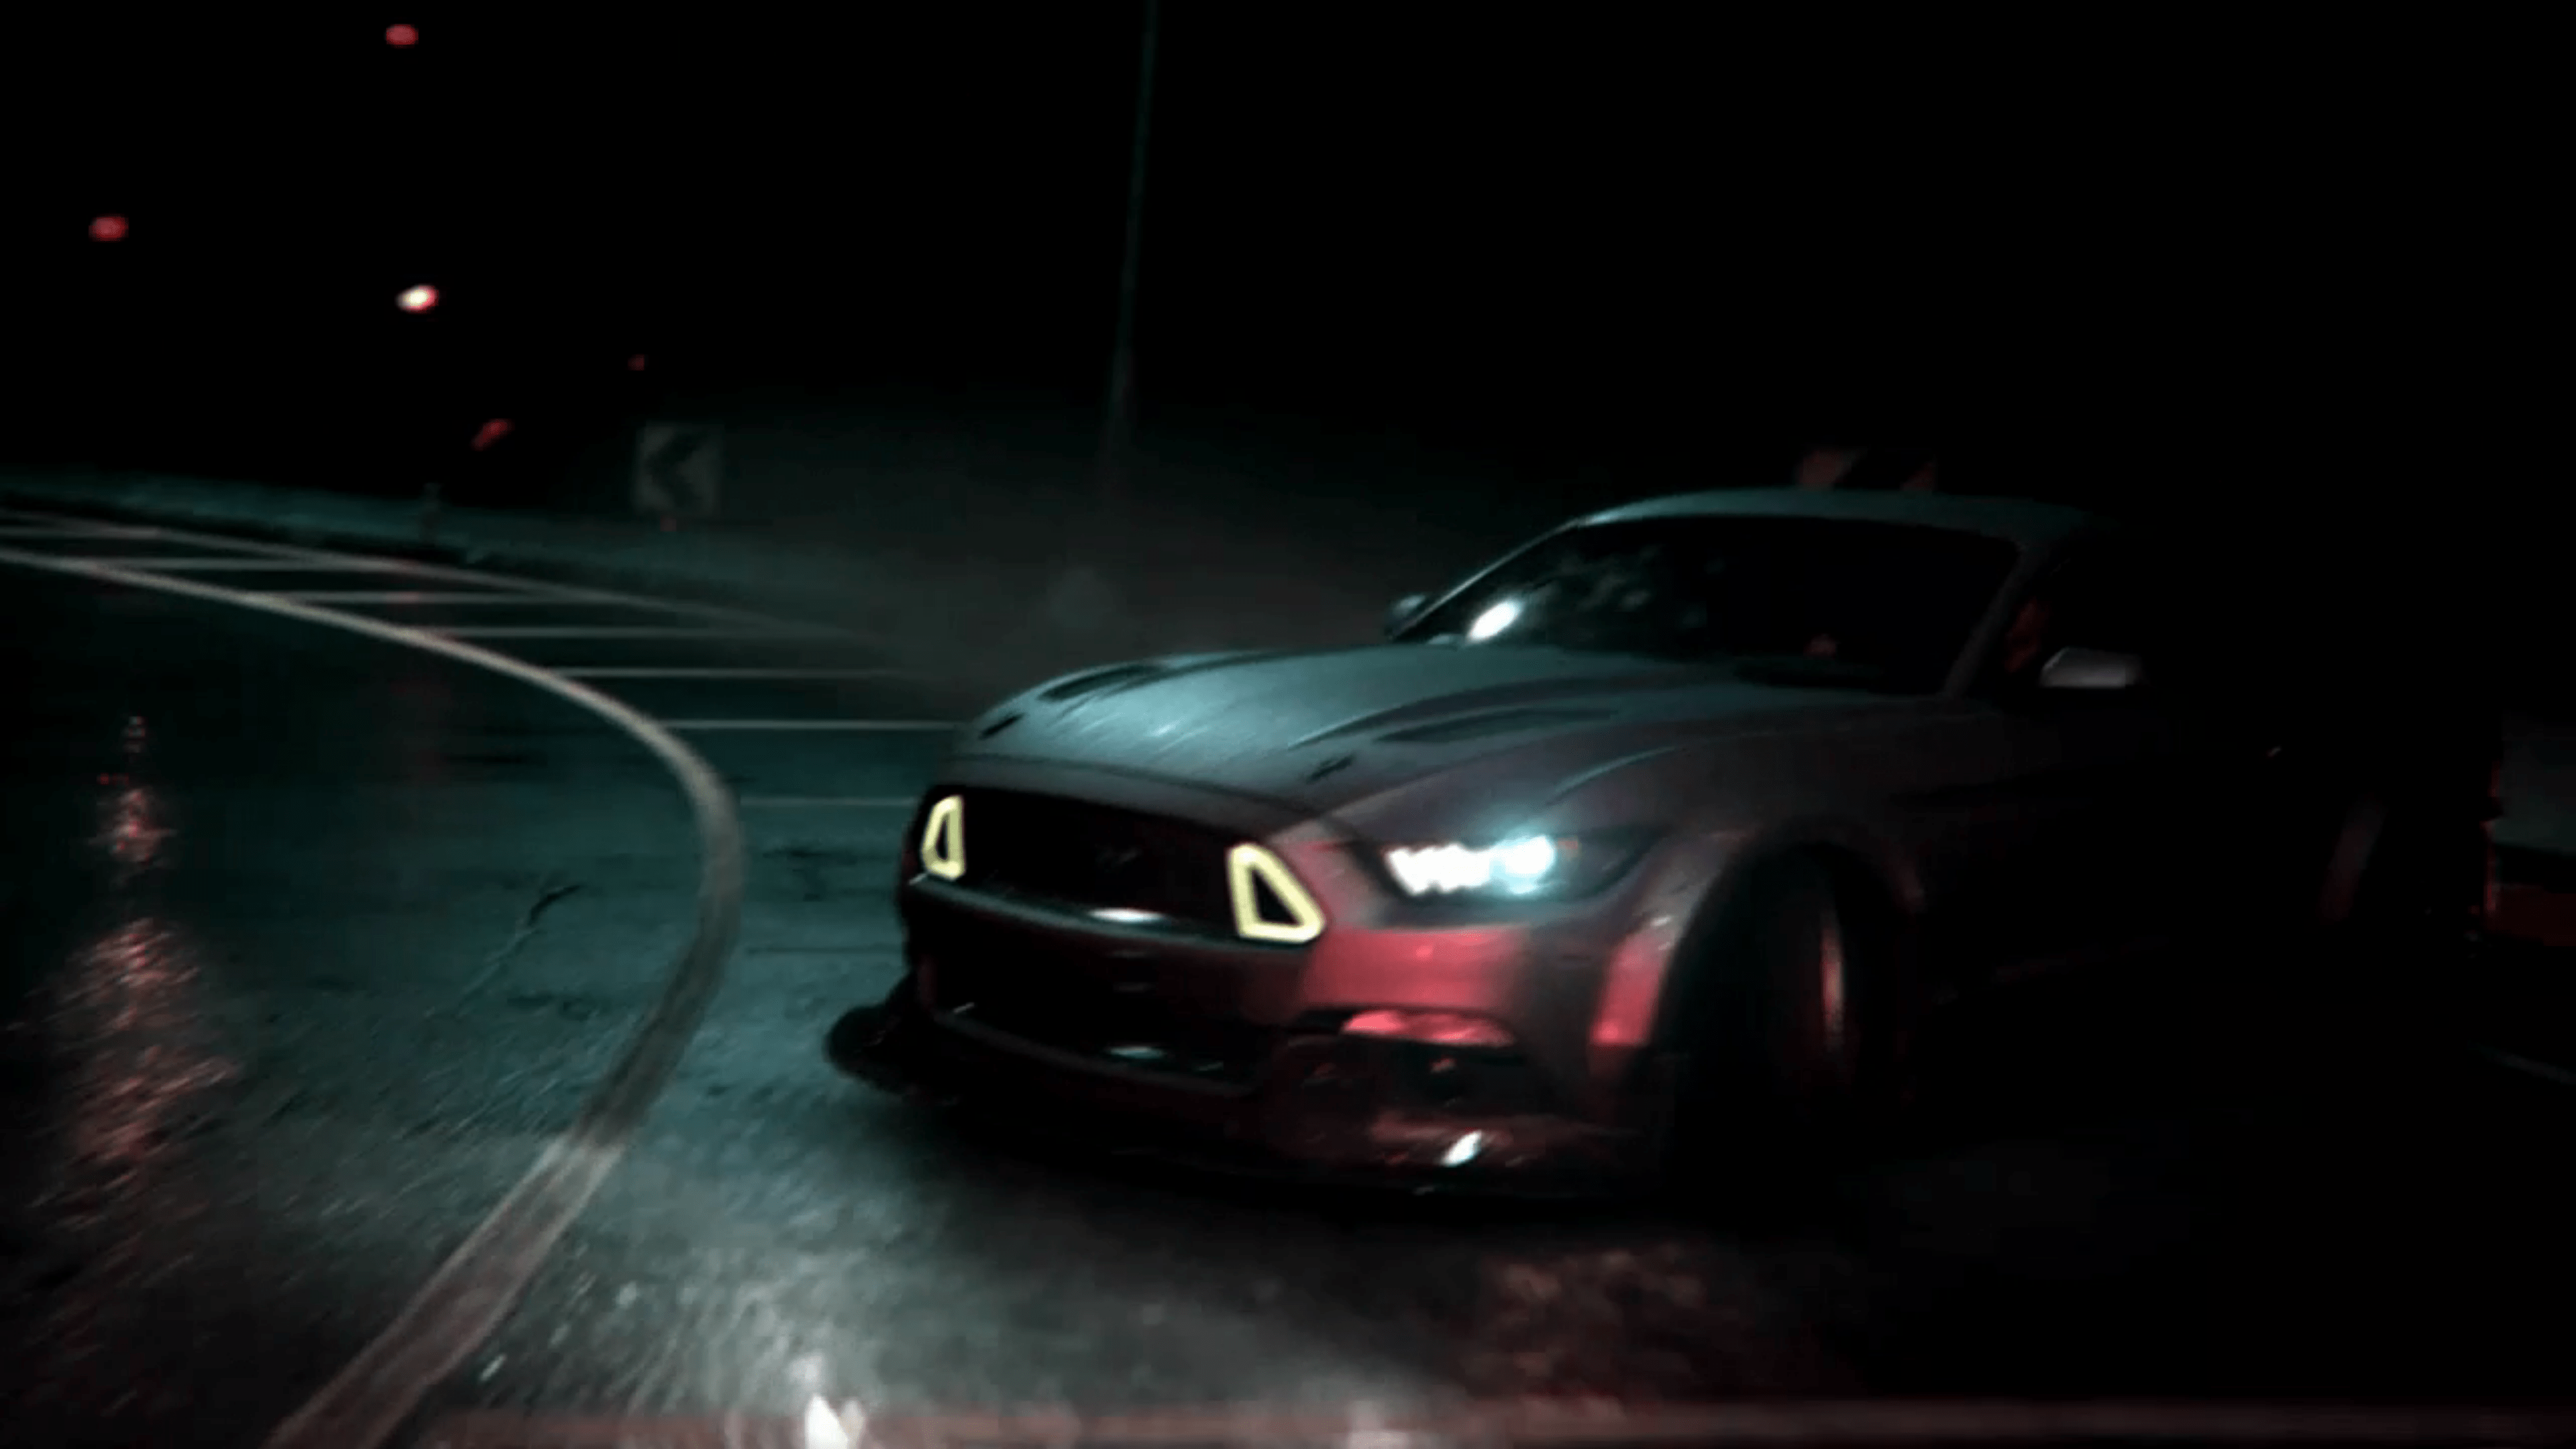 Cars Hd Wallpapers 1080p For Pc Bmw Need For Speed Gets Stunning Gameplay Trailer